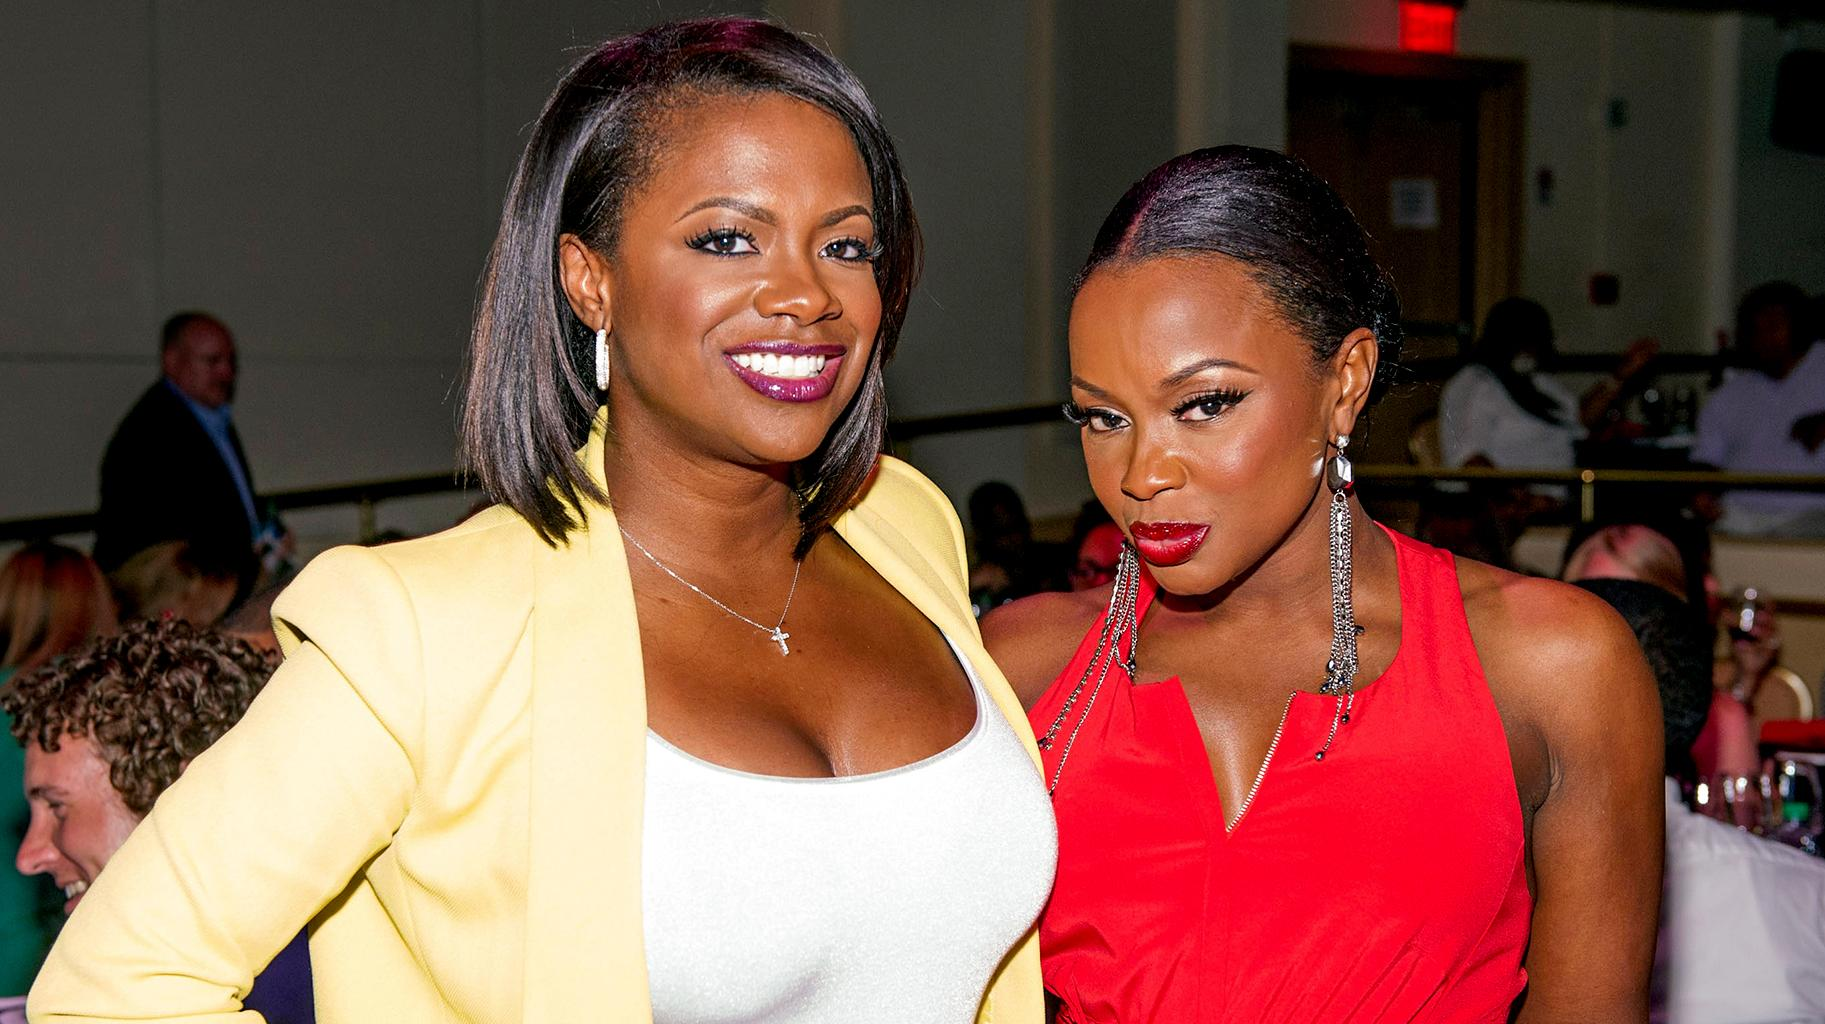 Phaedra Parks Claims RHOA Is 'Not Real' And Shades Kandi Burruss -- Says She Is Amused That She 'Really Impacted Her Life!'